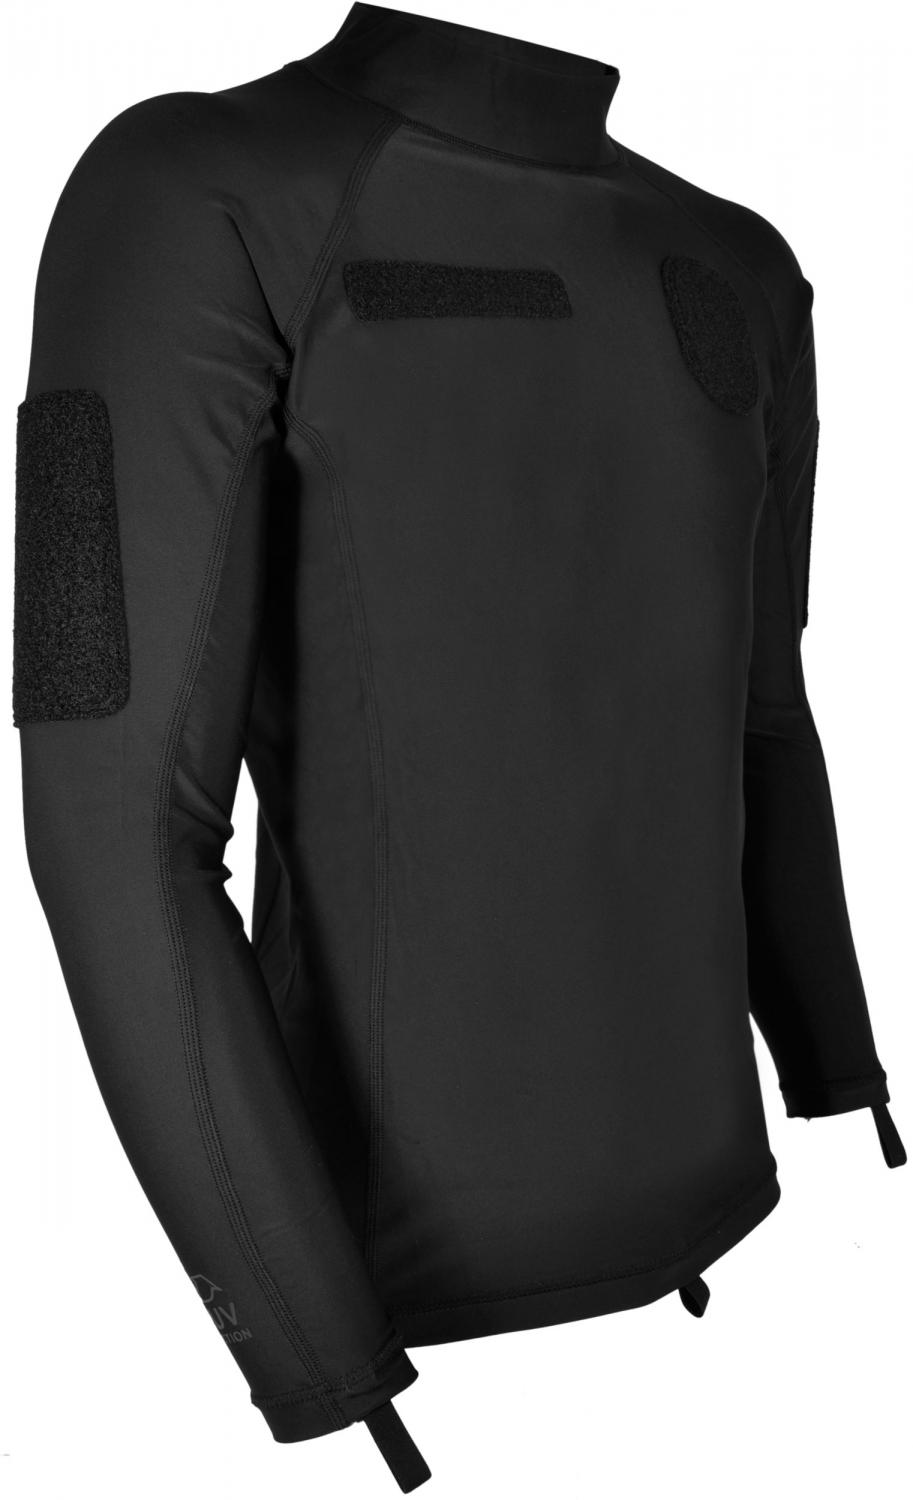 Hazard 4 Combat Base Lycra Rash Guard, 2X Large